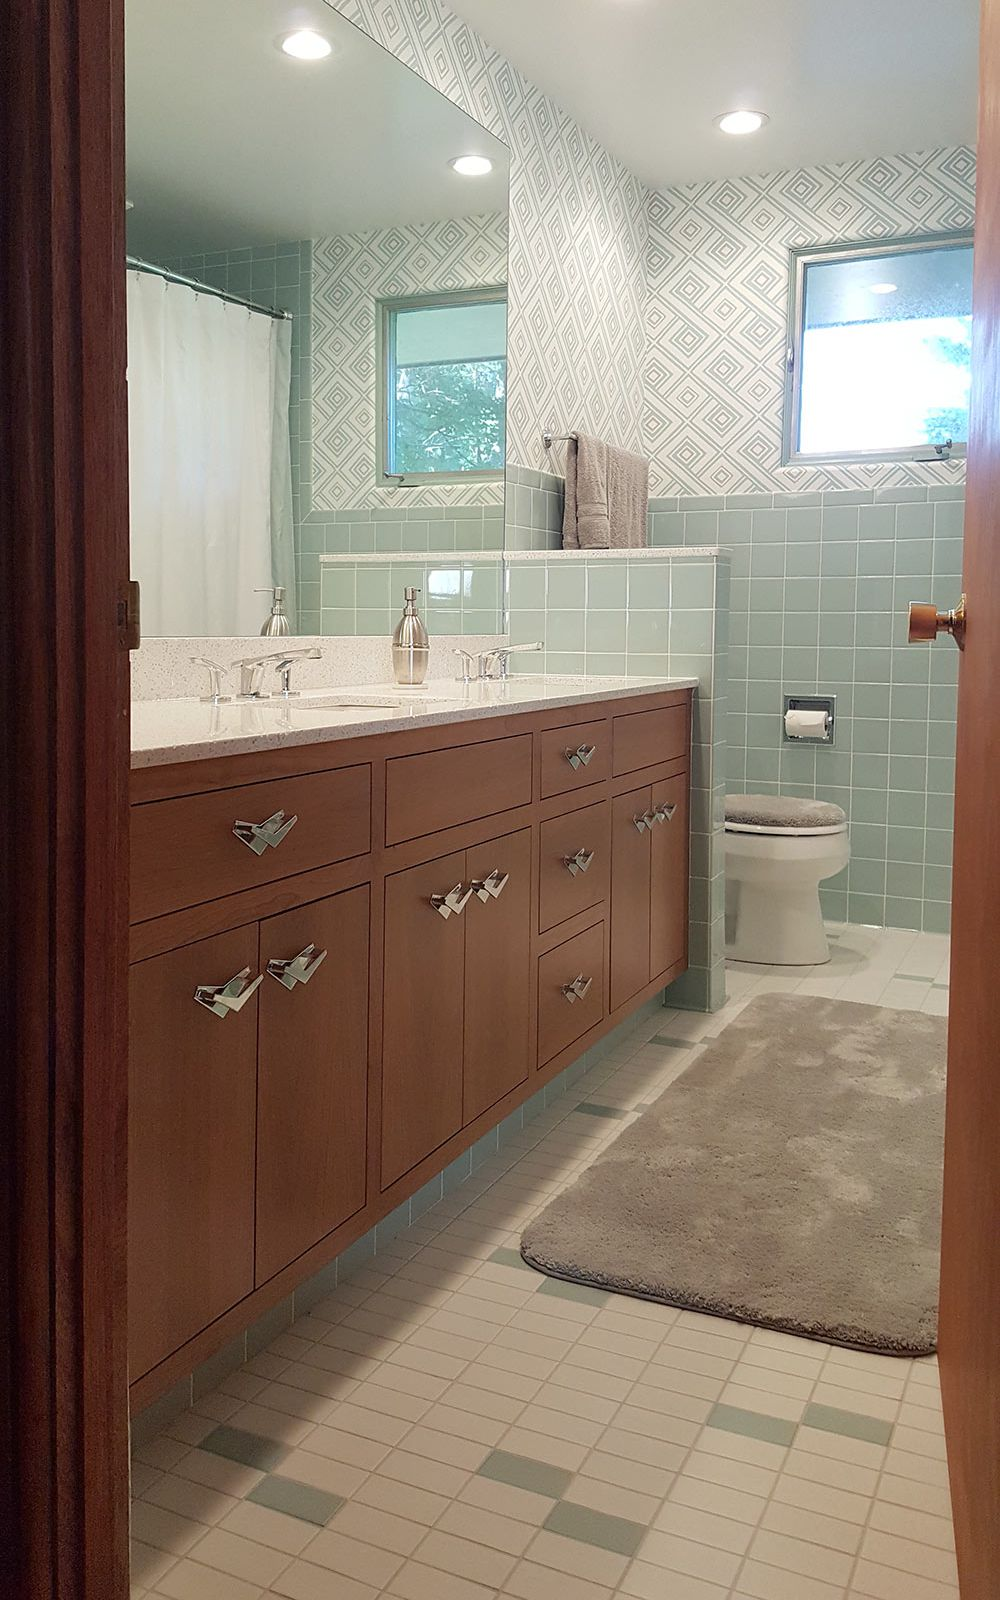 A New Blue Bathroom For A 1955 House That Looks Like It 39 S Always Been There